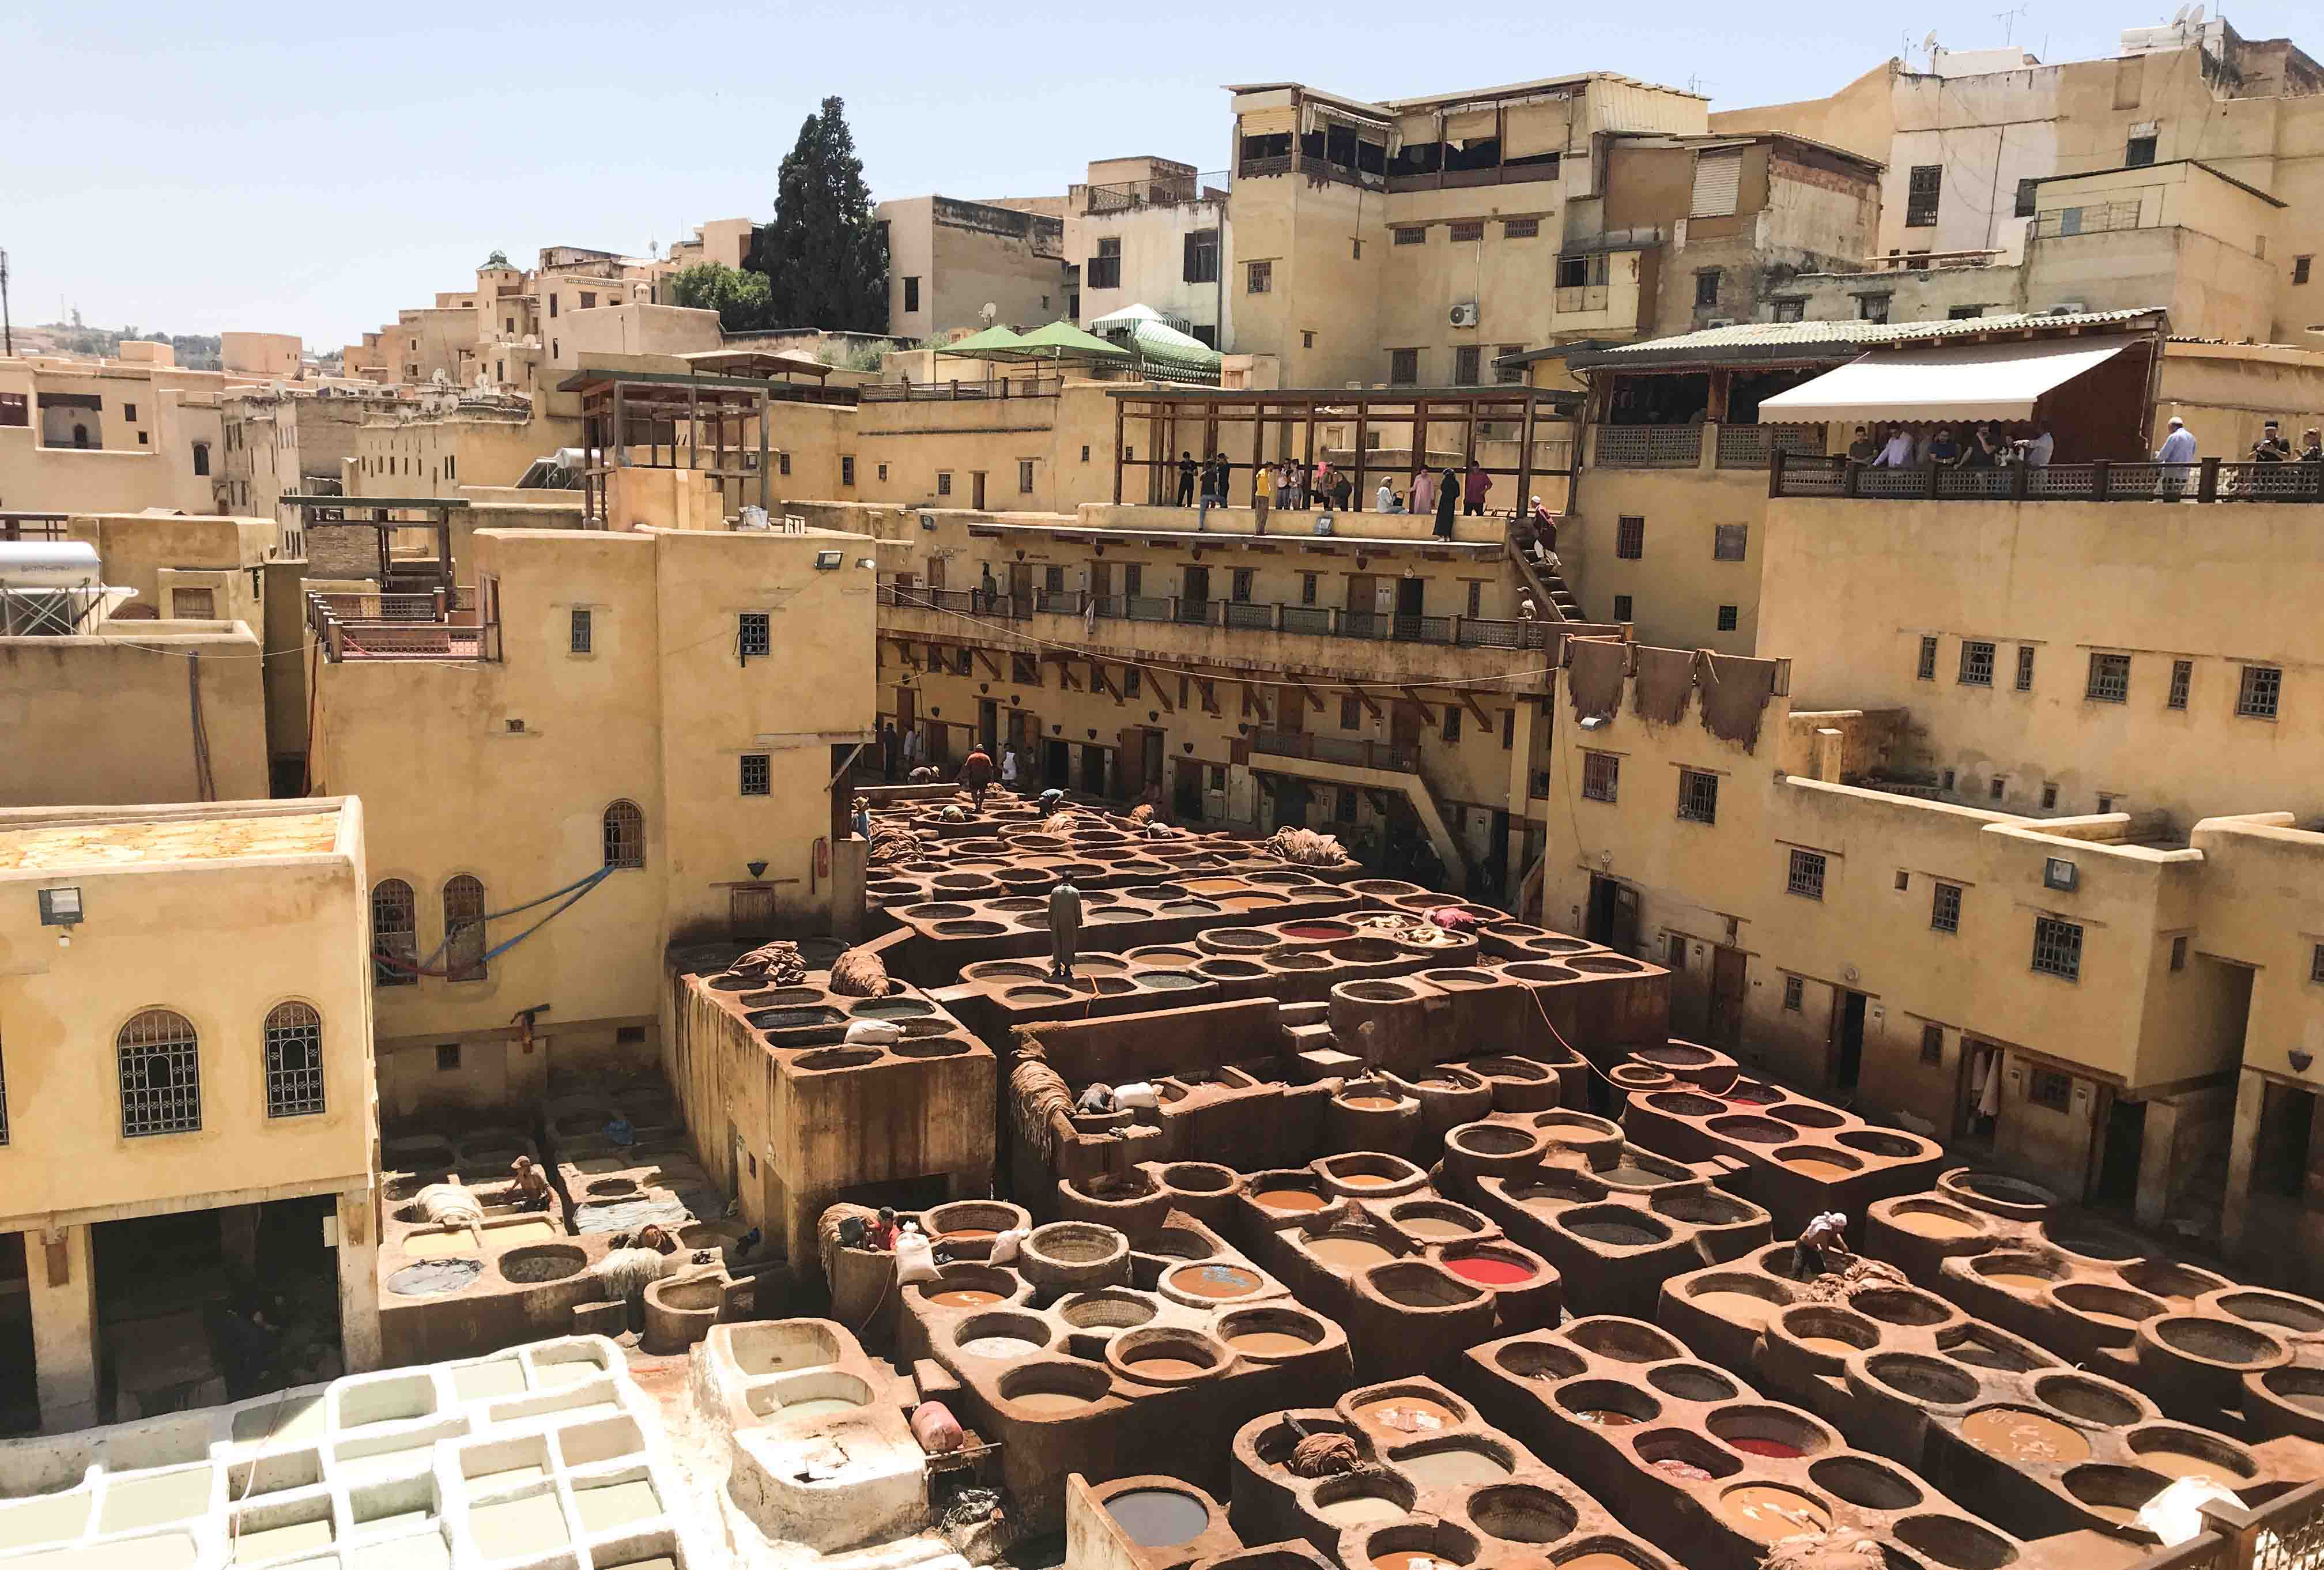 Overlooking Fez's largest tannery - Chouara. If you're lucky, they'll give you a sprig of fresh mint to sniff while your guide explains the process before you.